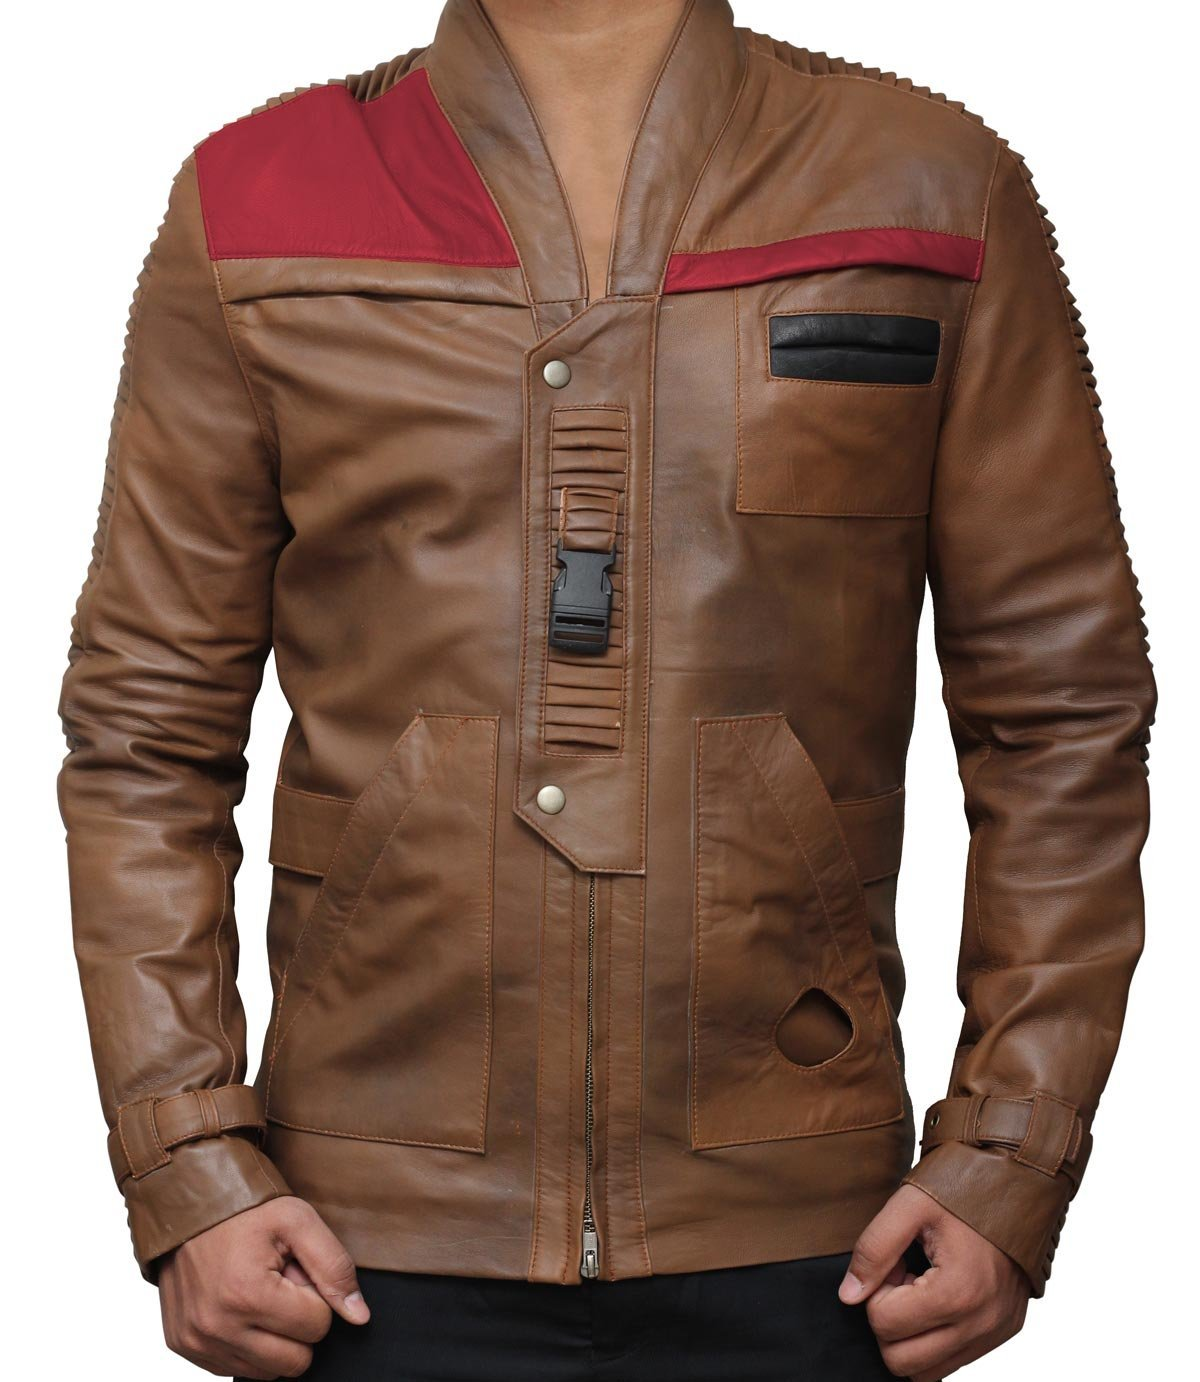 Star Wars Finn Outerwear Jacket Real Brown Leather Jackets Holiday Gifts (M, Chocolate Brown) by fjackets (Image #1)